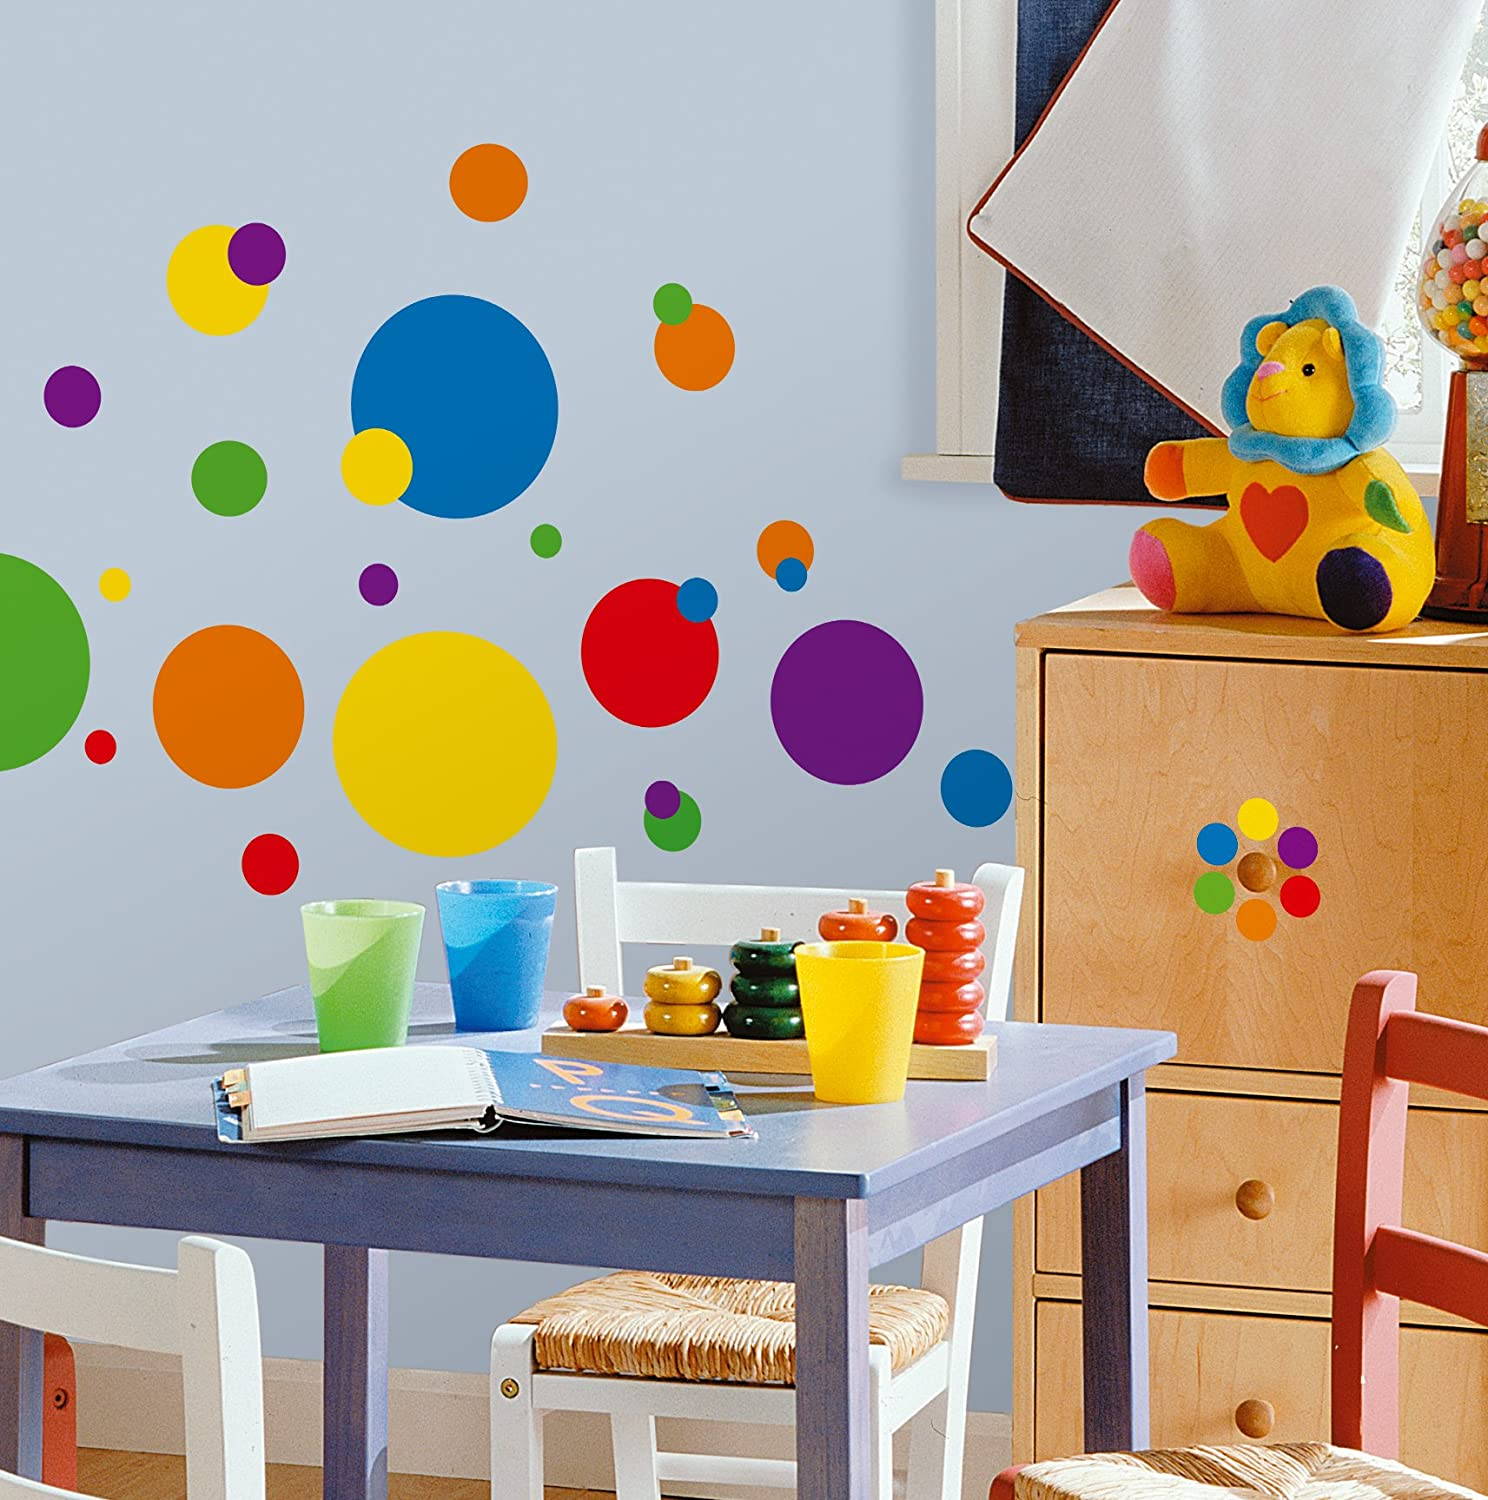 classroom wall decor colorful polka dots theme